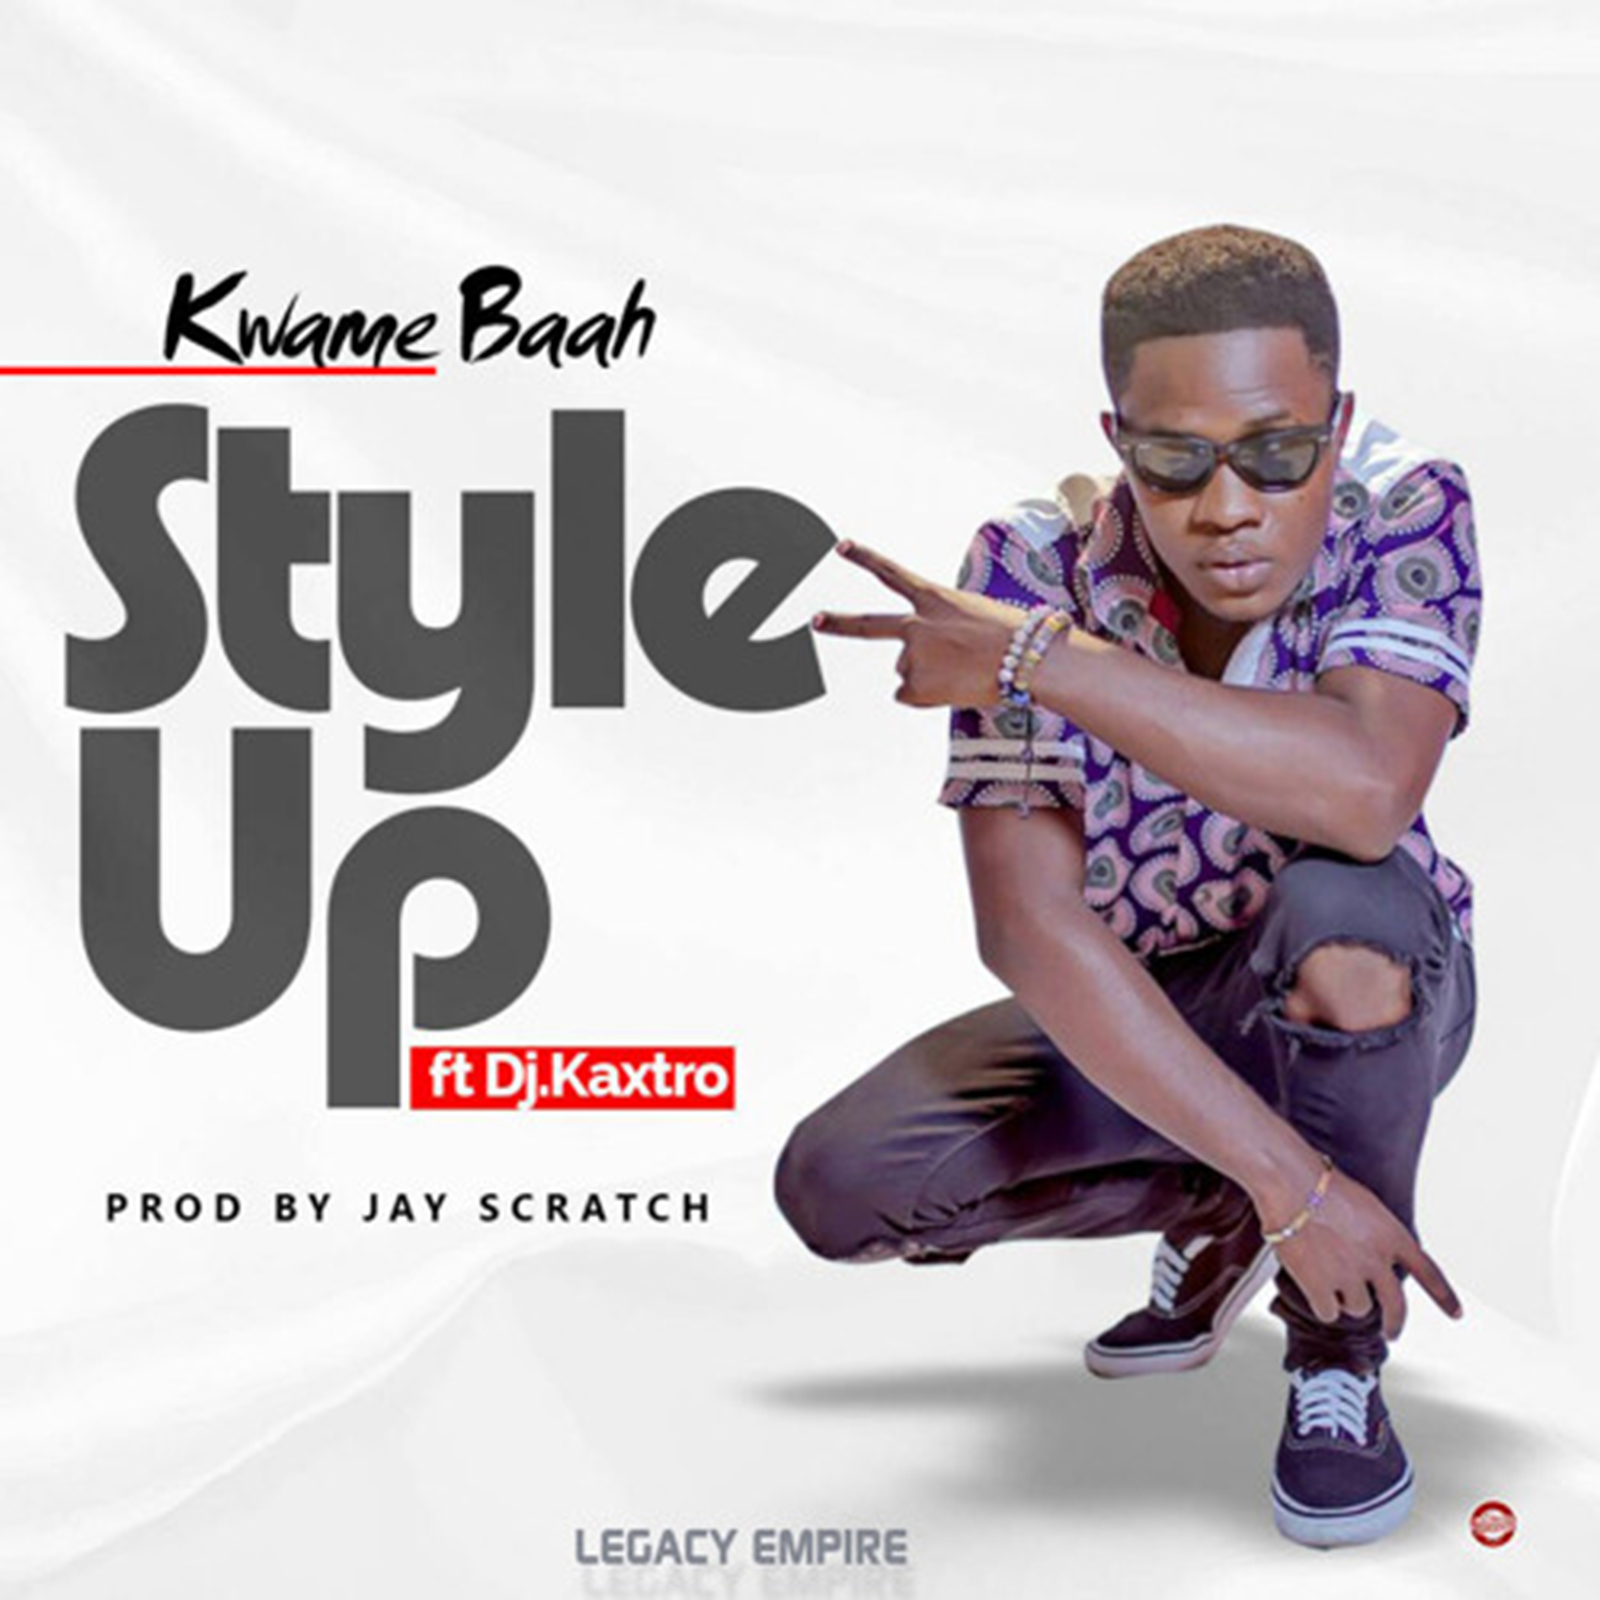 Style Up ft. by Kwame Baah feat. DJ Kaxtro